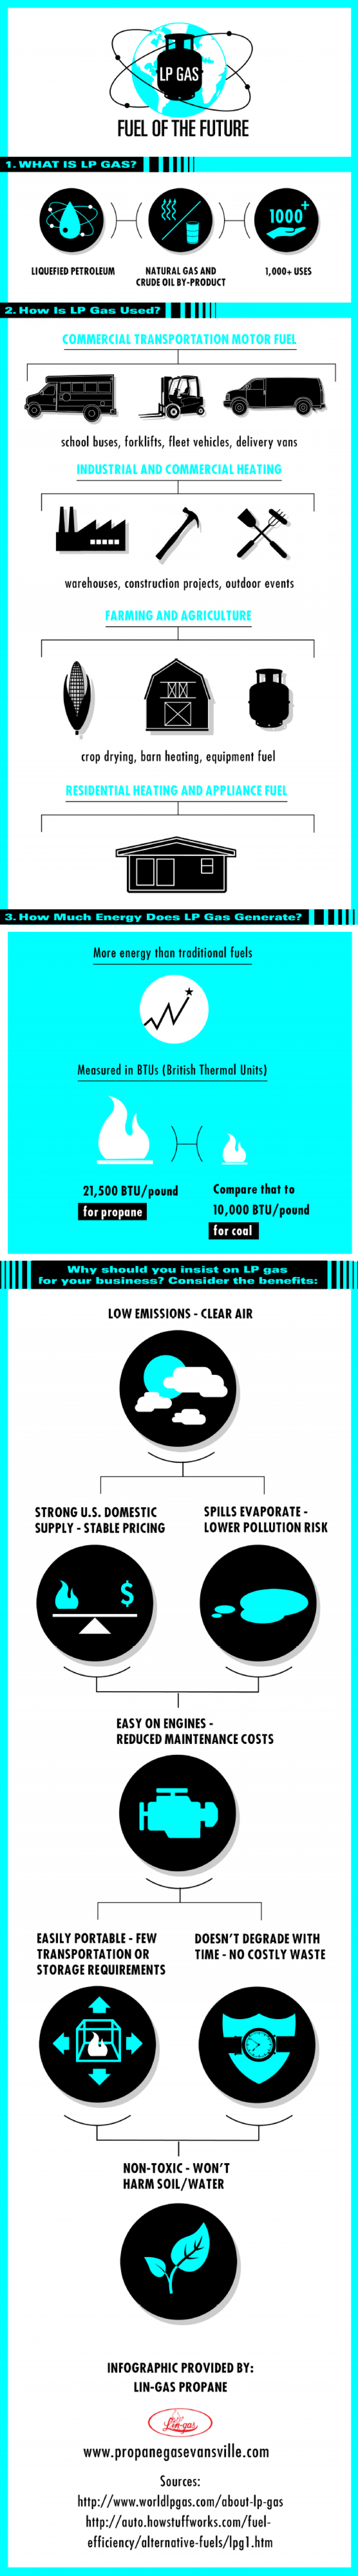 LP Gas: Fuel of the Future Infographic